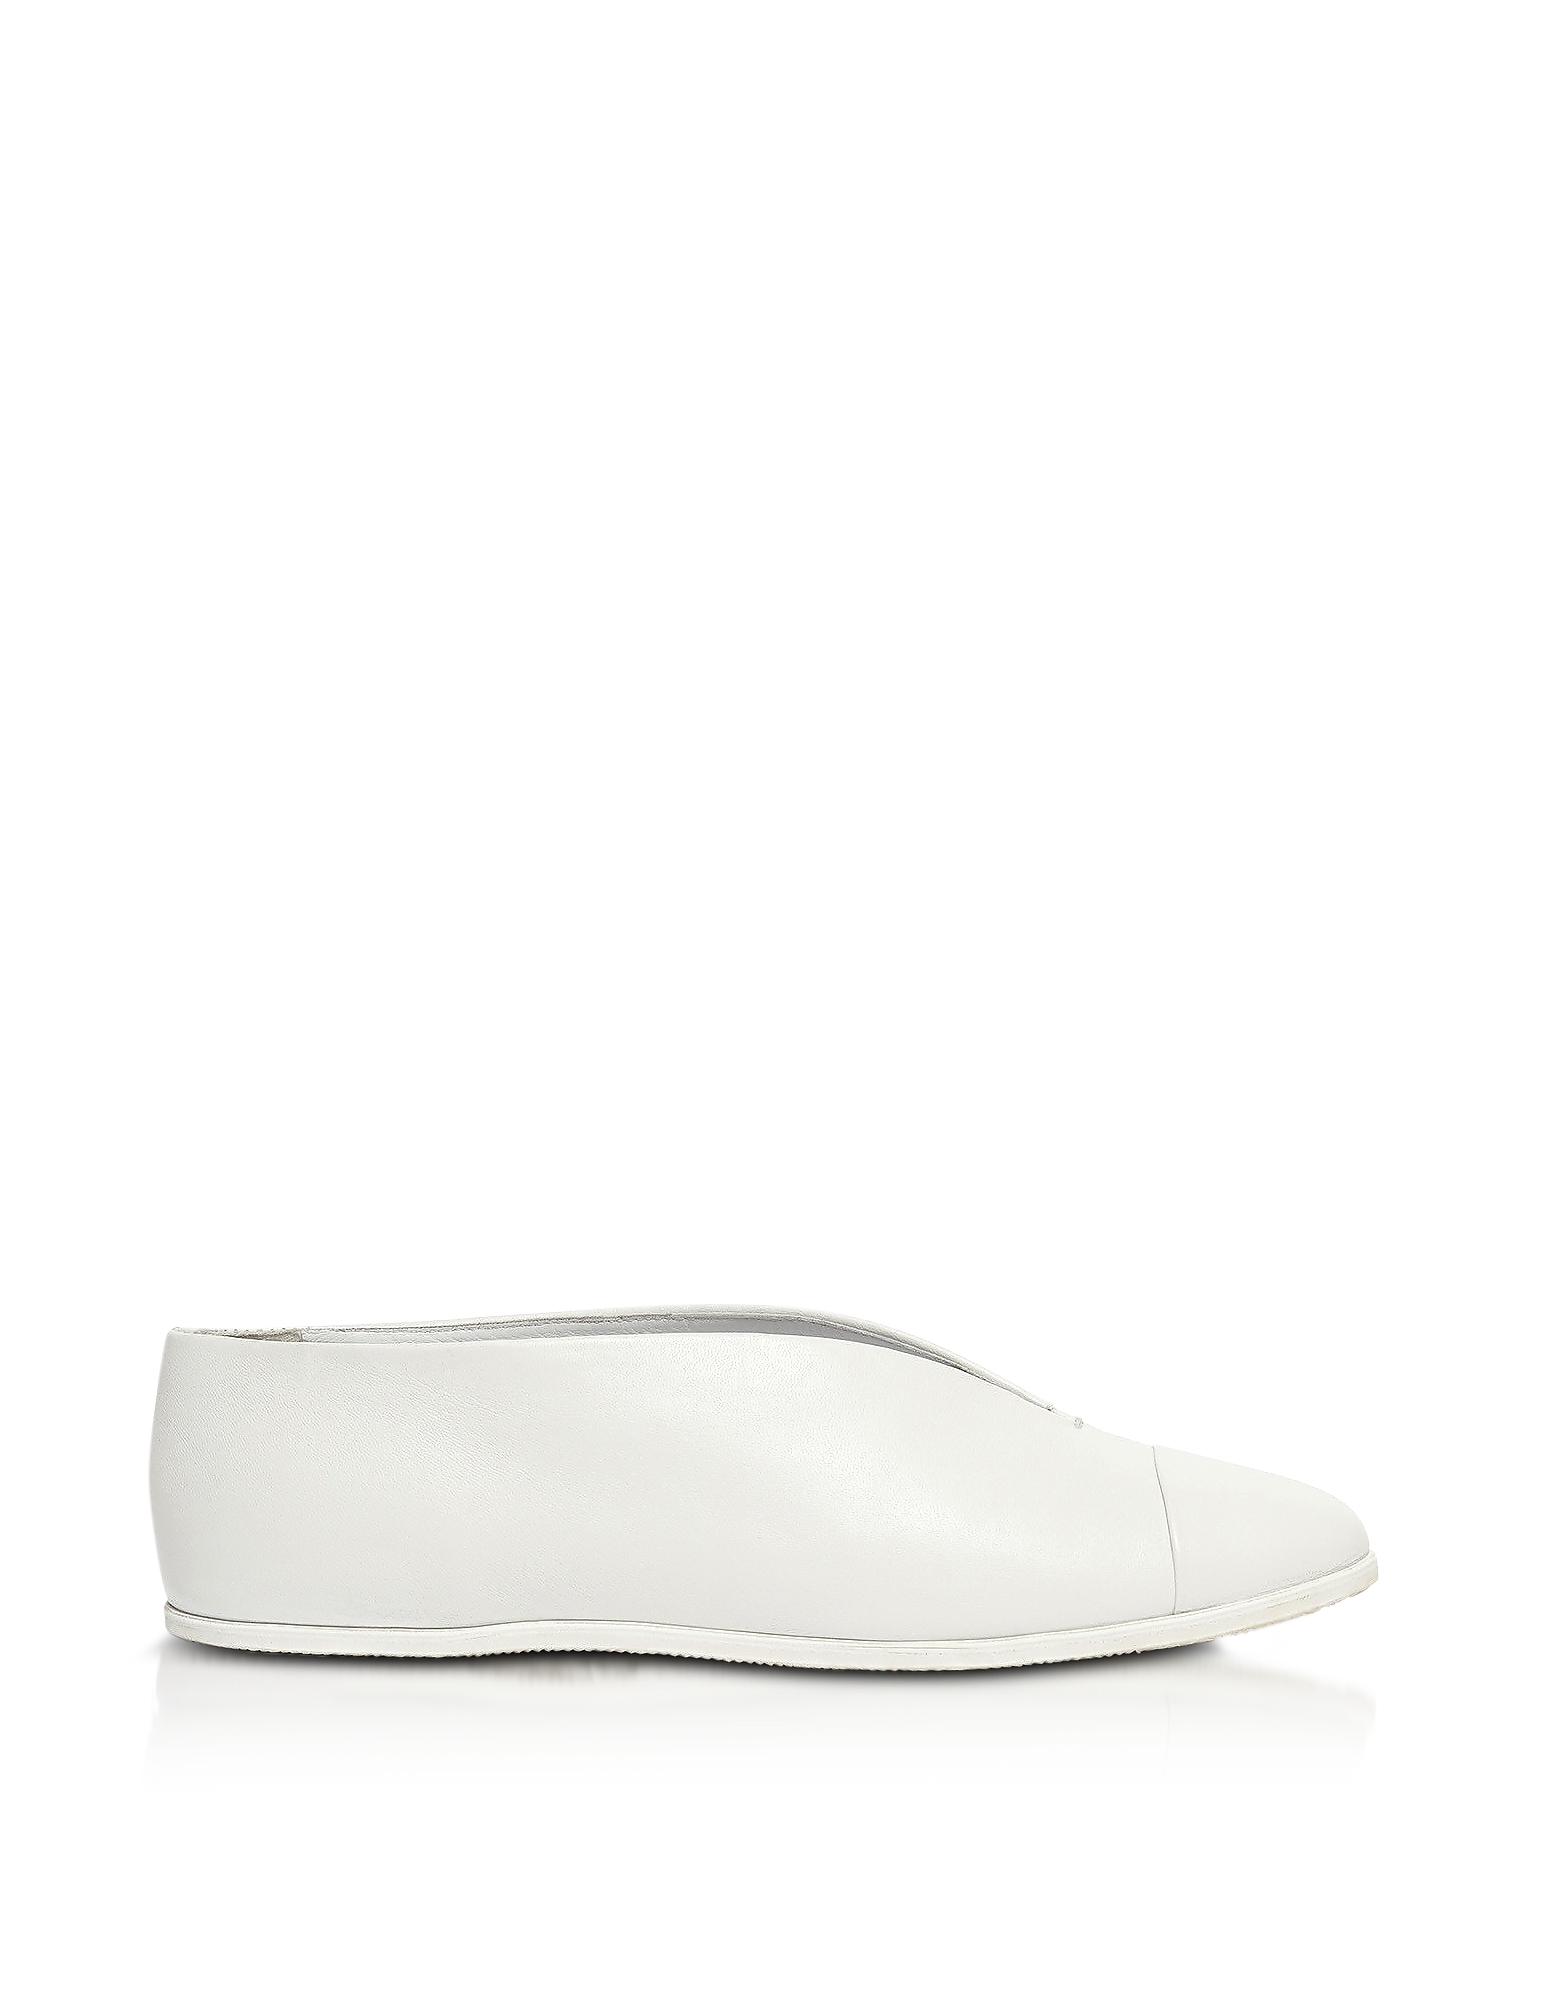 Victoria Beckham Shoes, White Leather Flat Shoe